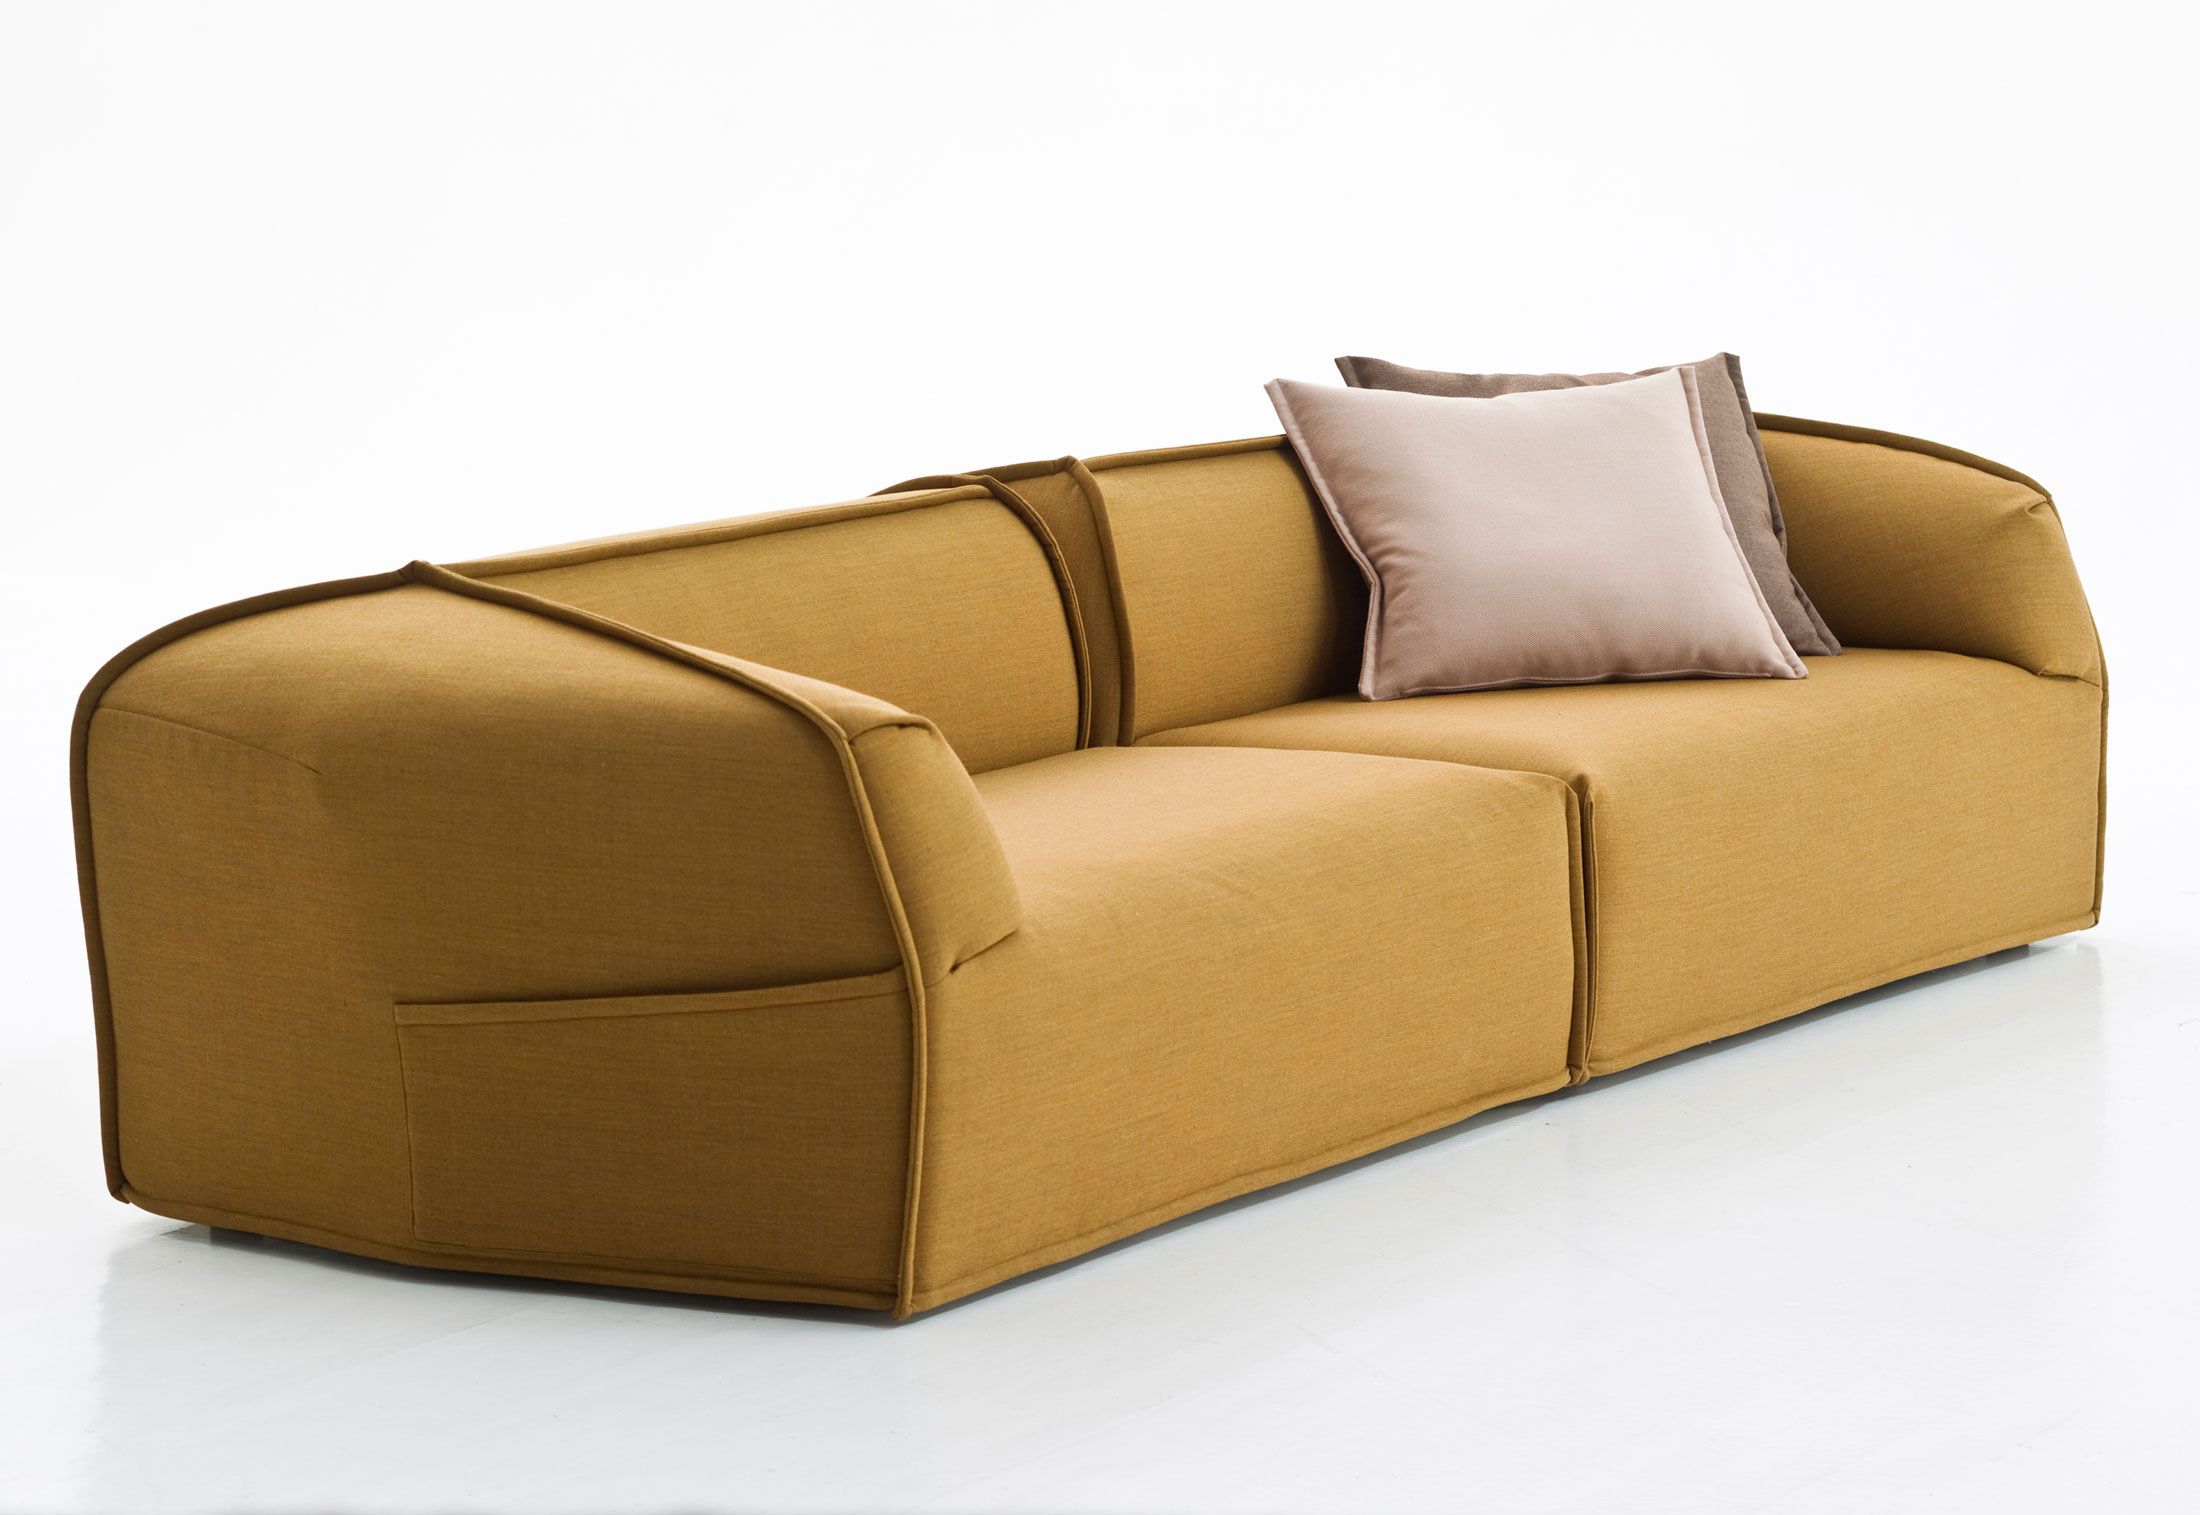 m a s s a s sofa by moroso stylepark. Black Bedroom Furniture Sets. Home Design Ideas